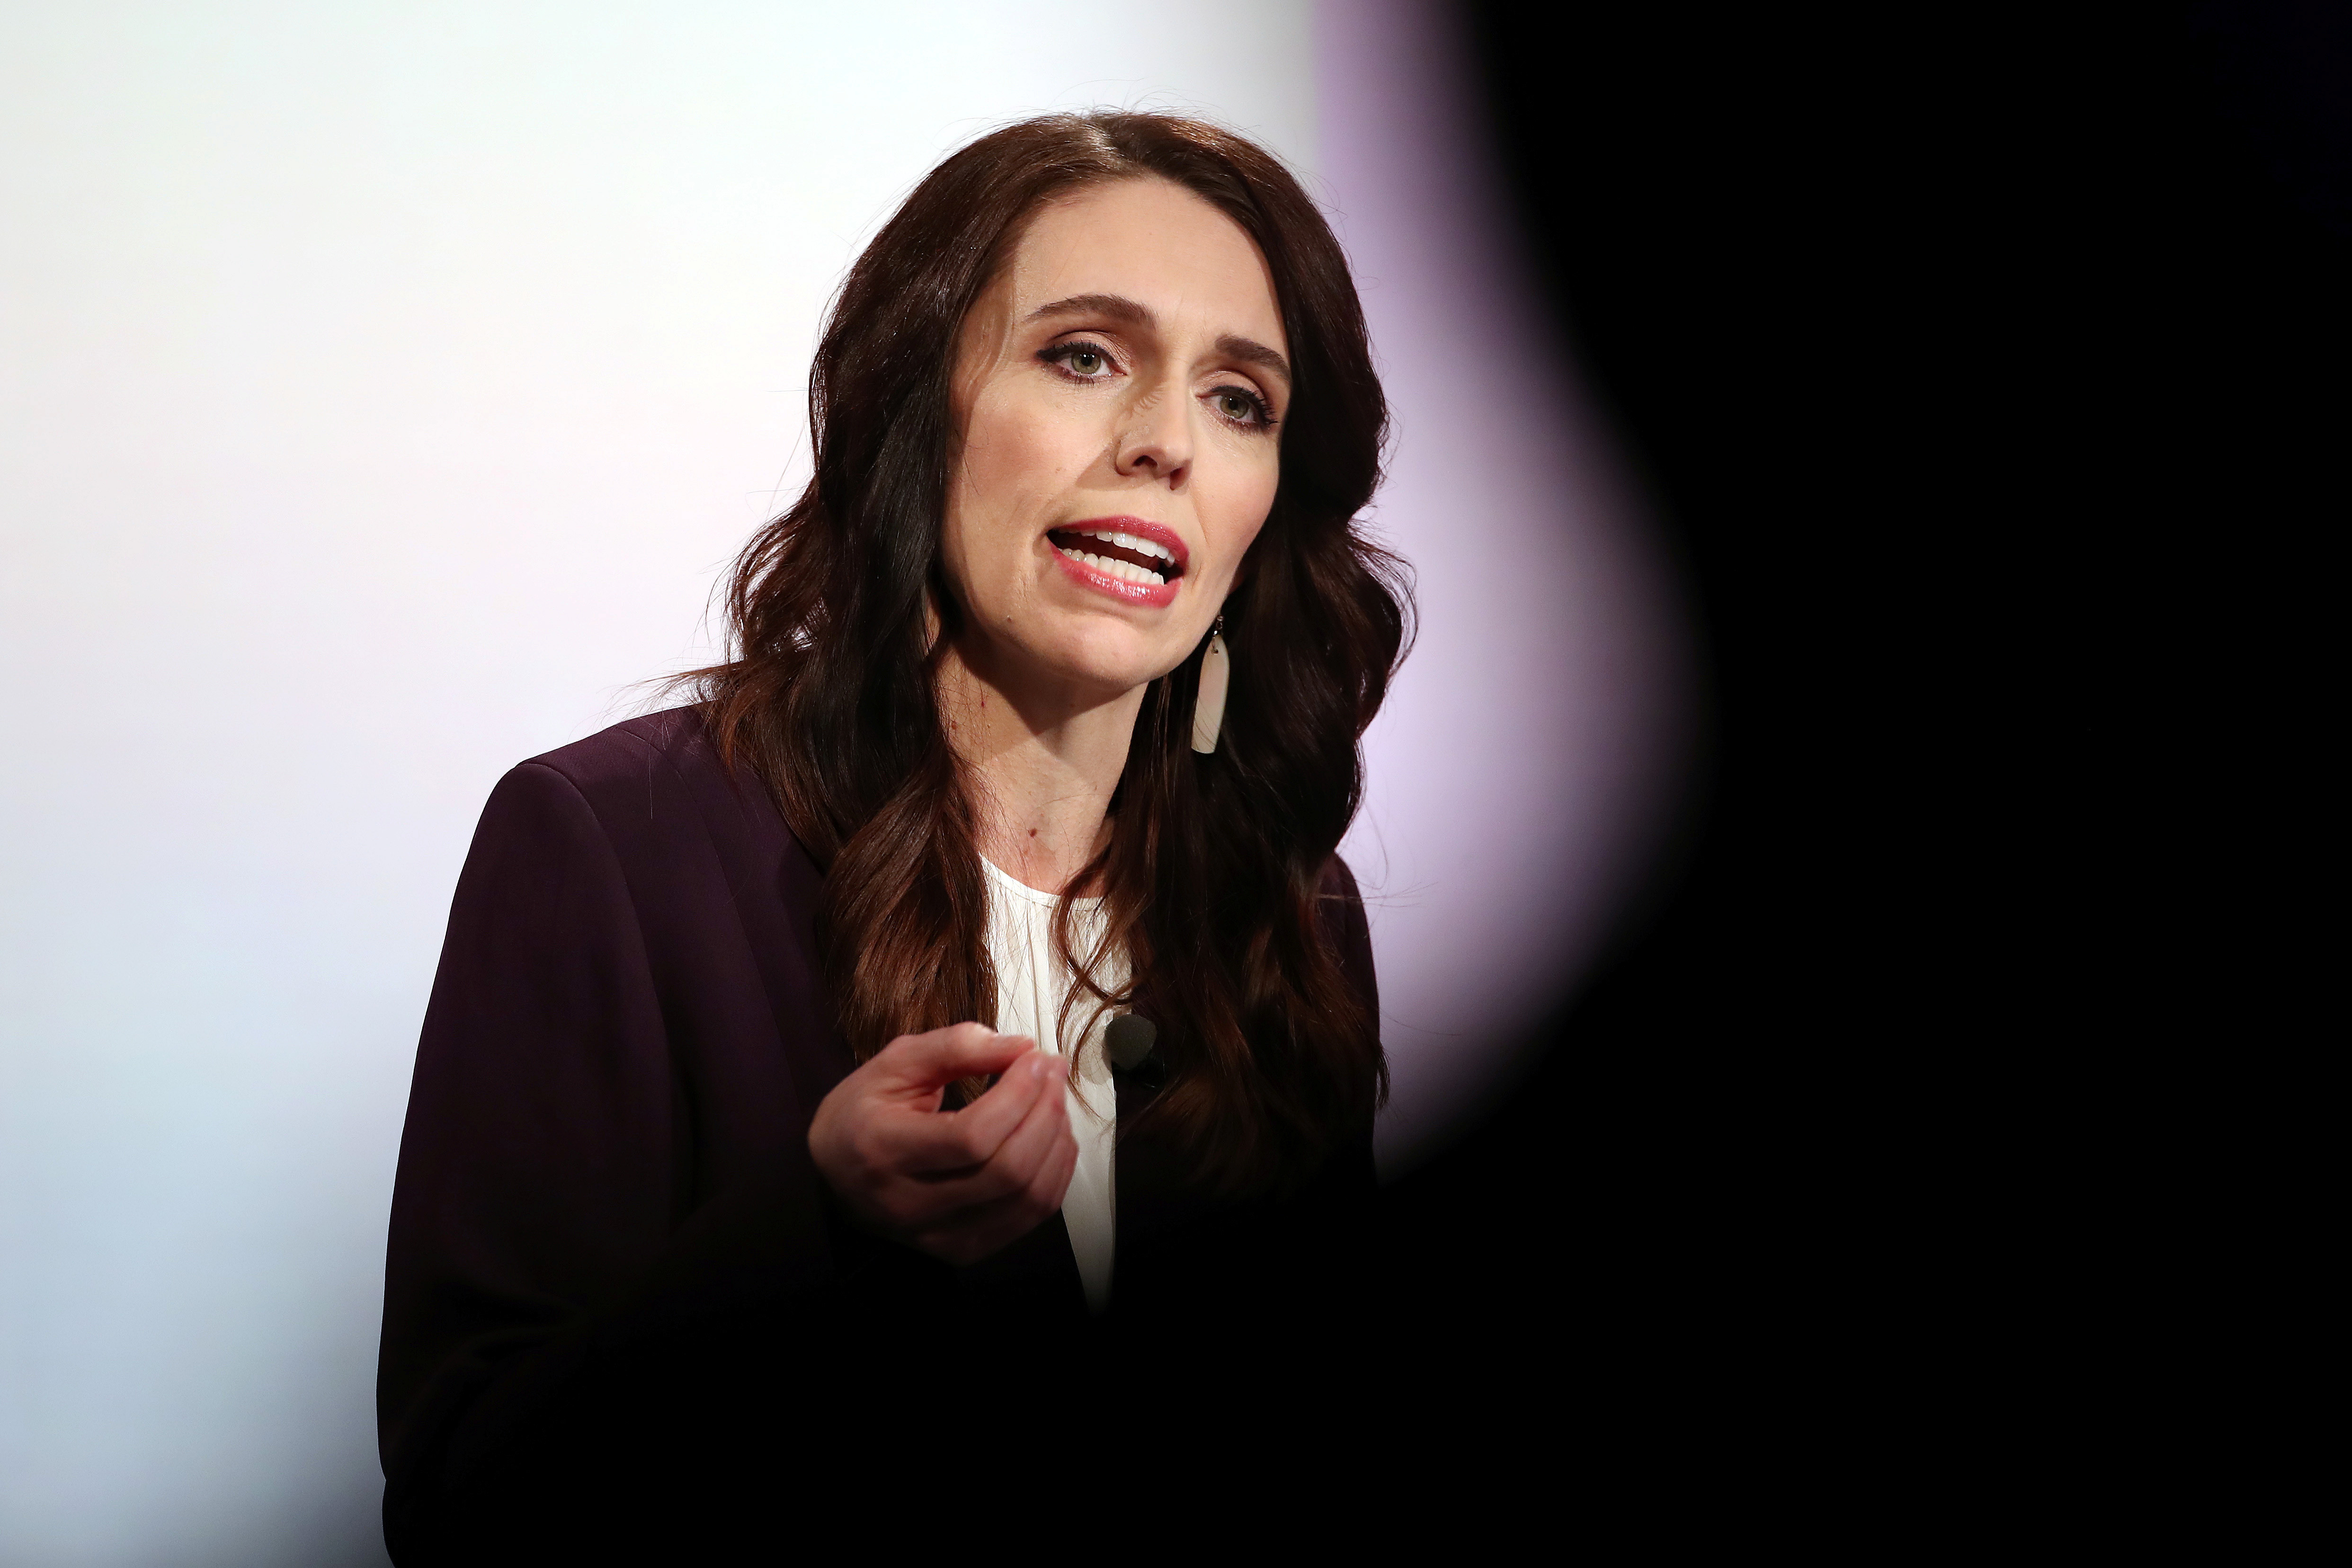 New Zealand Prime Minister Jacinda Ardern participates in a televised debate with National leader Judith Collins at TVNZ in Auckland, New Zealand, September 22, 2020. Fiona Goodall/Pool via REUTERS - RC2L3J9IZADK